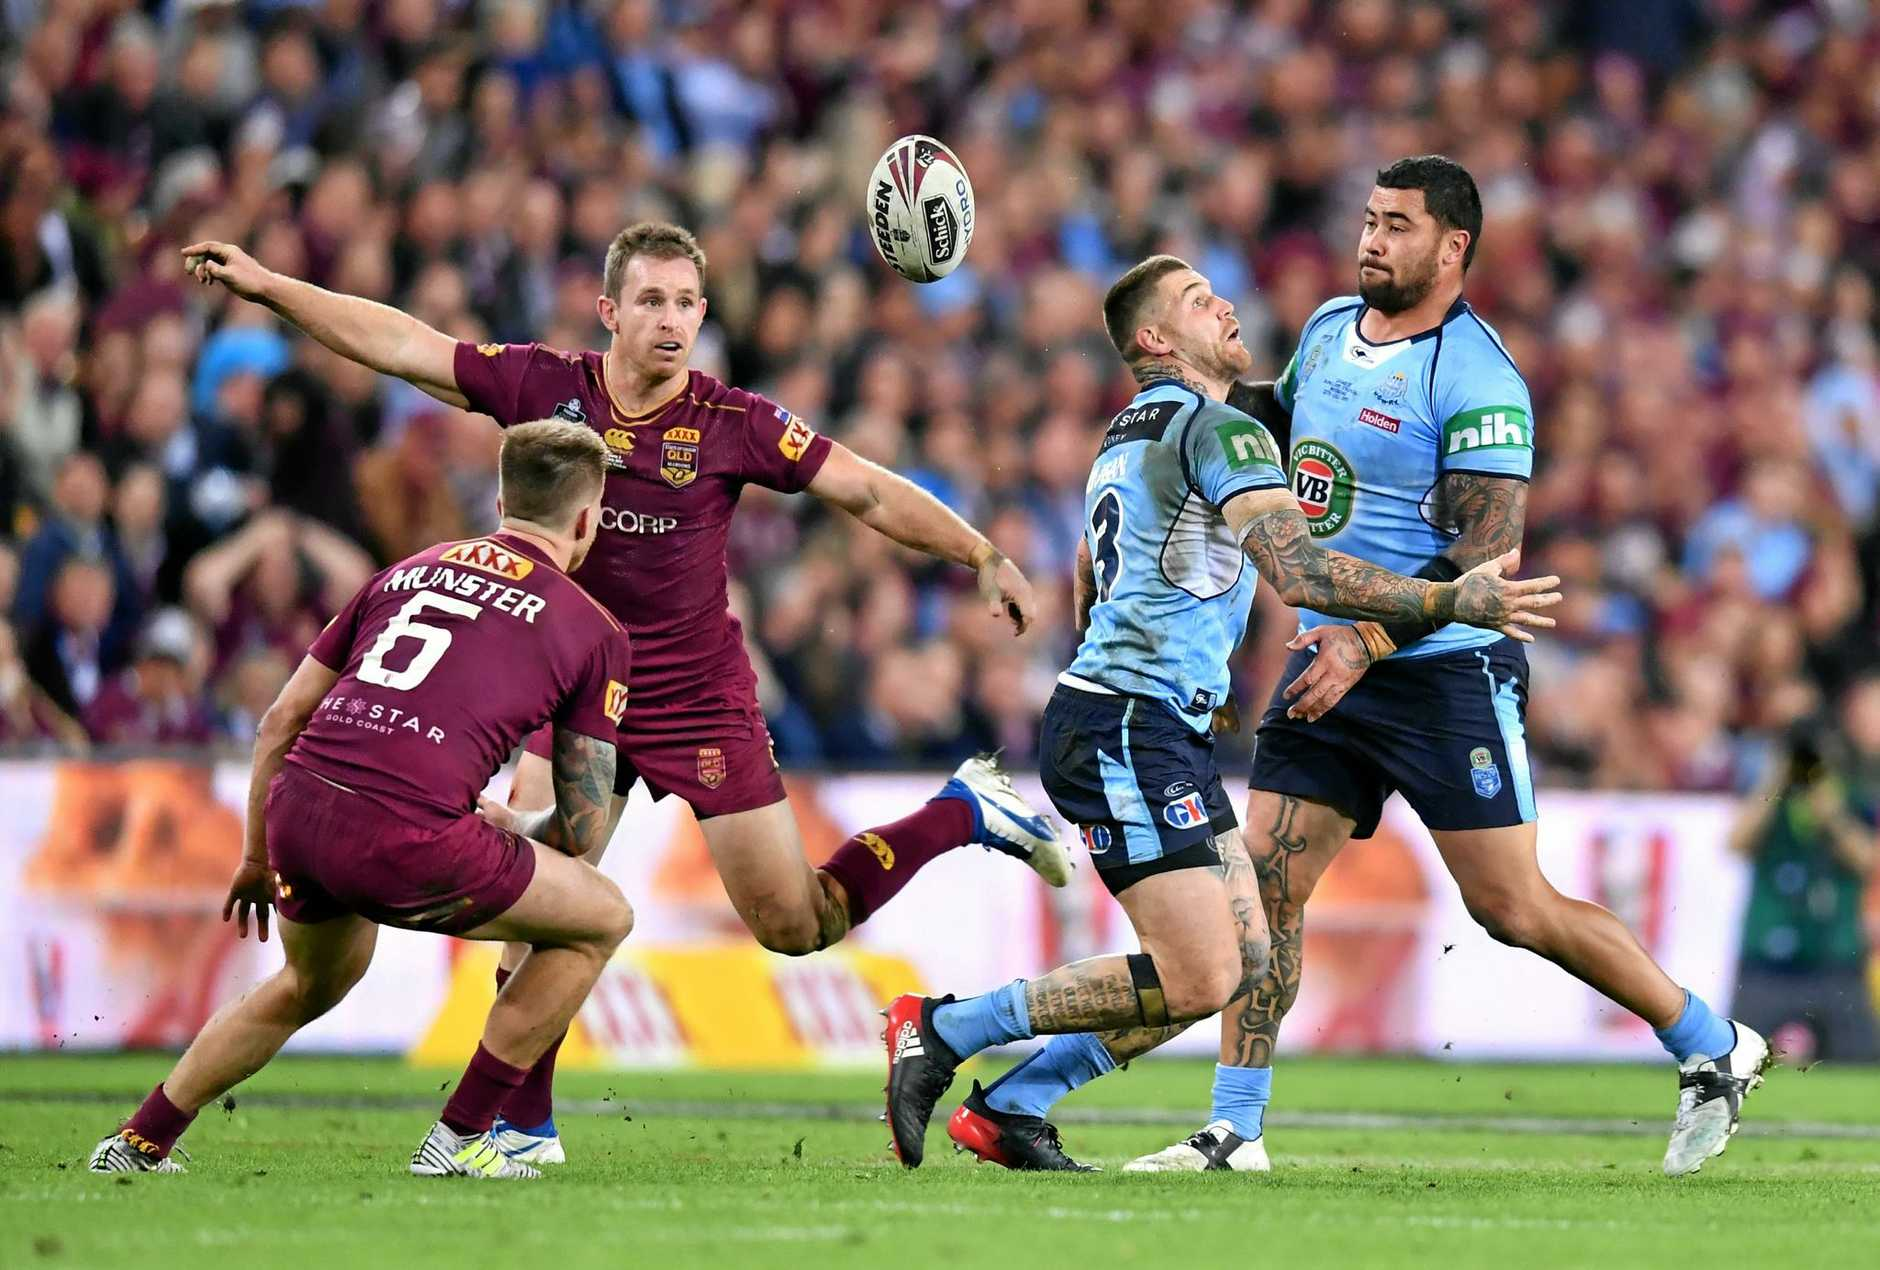 Josh Dugan  (second from right) of the Blues loses the ball in the tackle of Cameron Munster (left) and Michael Morgan  (second from left) of the Maroons during State of Origin game 3 between the Queensland Maroons and the New South Wales Blues at Suncorp Stadium in Brisbane, Wednesday, July 12, 2017.  (AAP Image/Darren England) NO ARCHIVING, EDITORIAL USE ONLY.